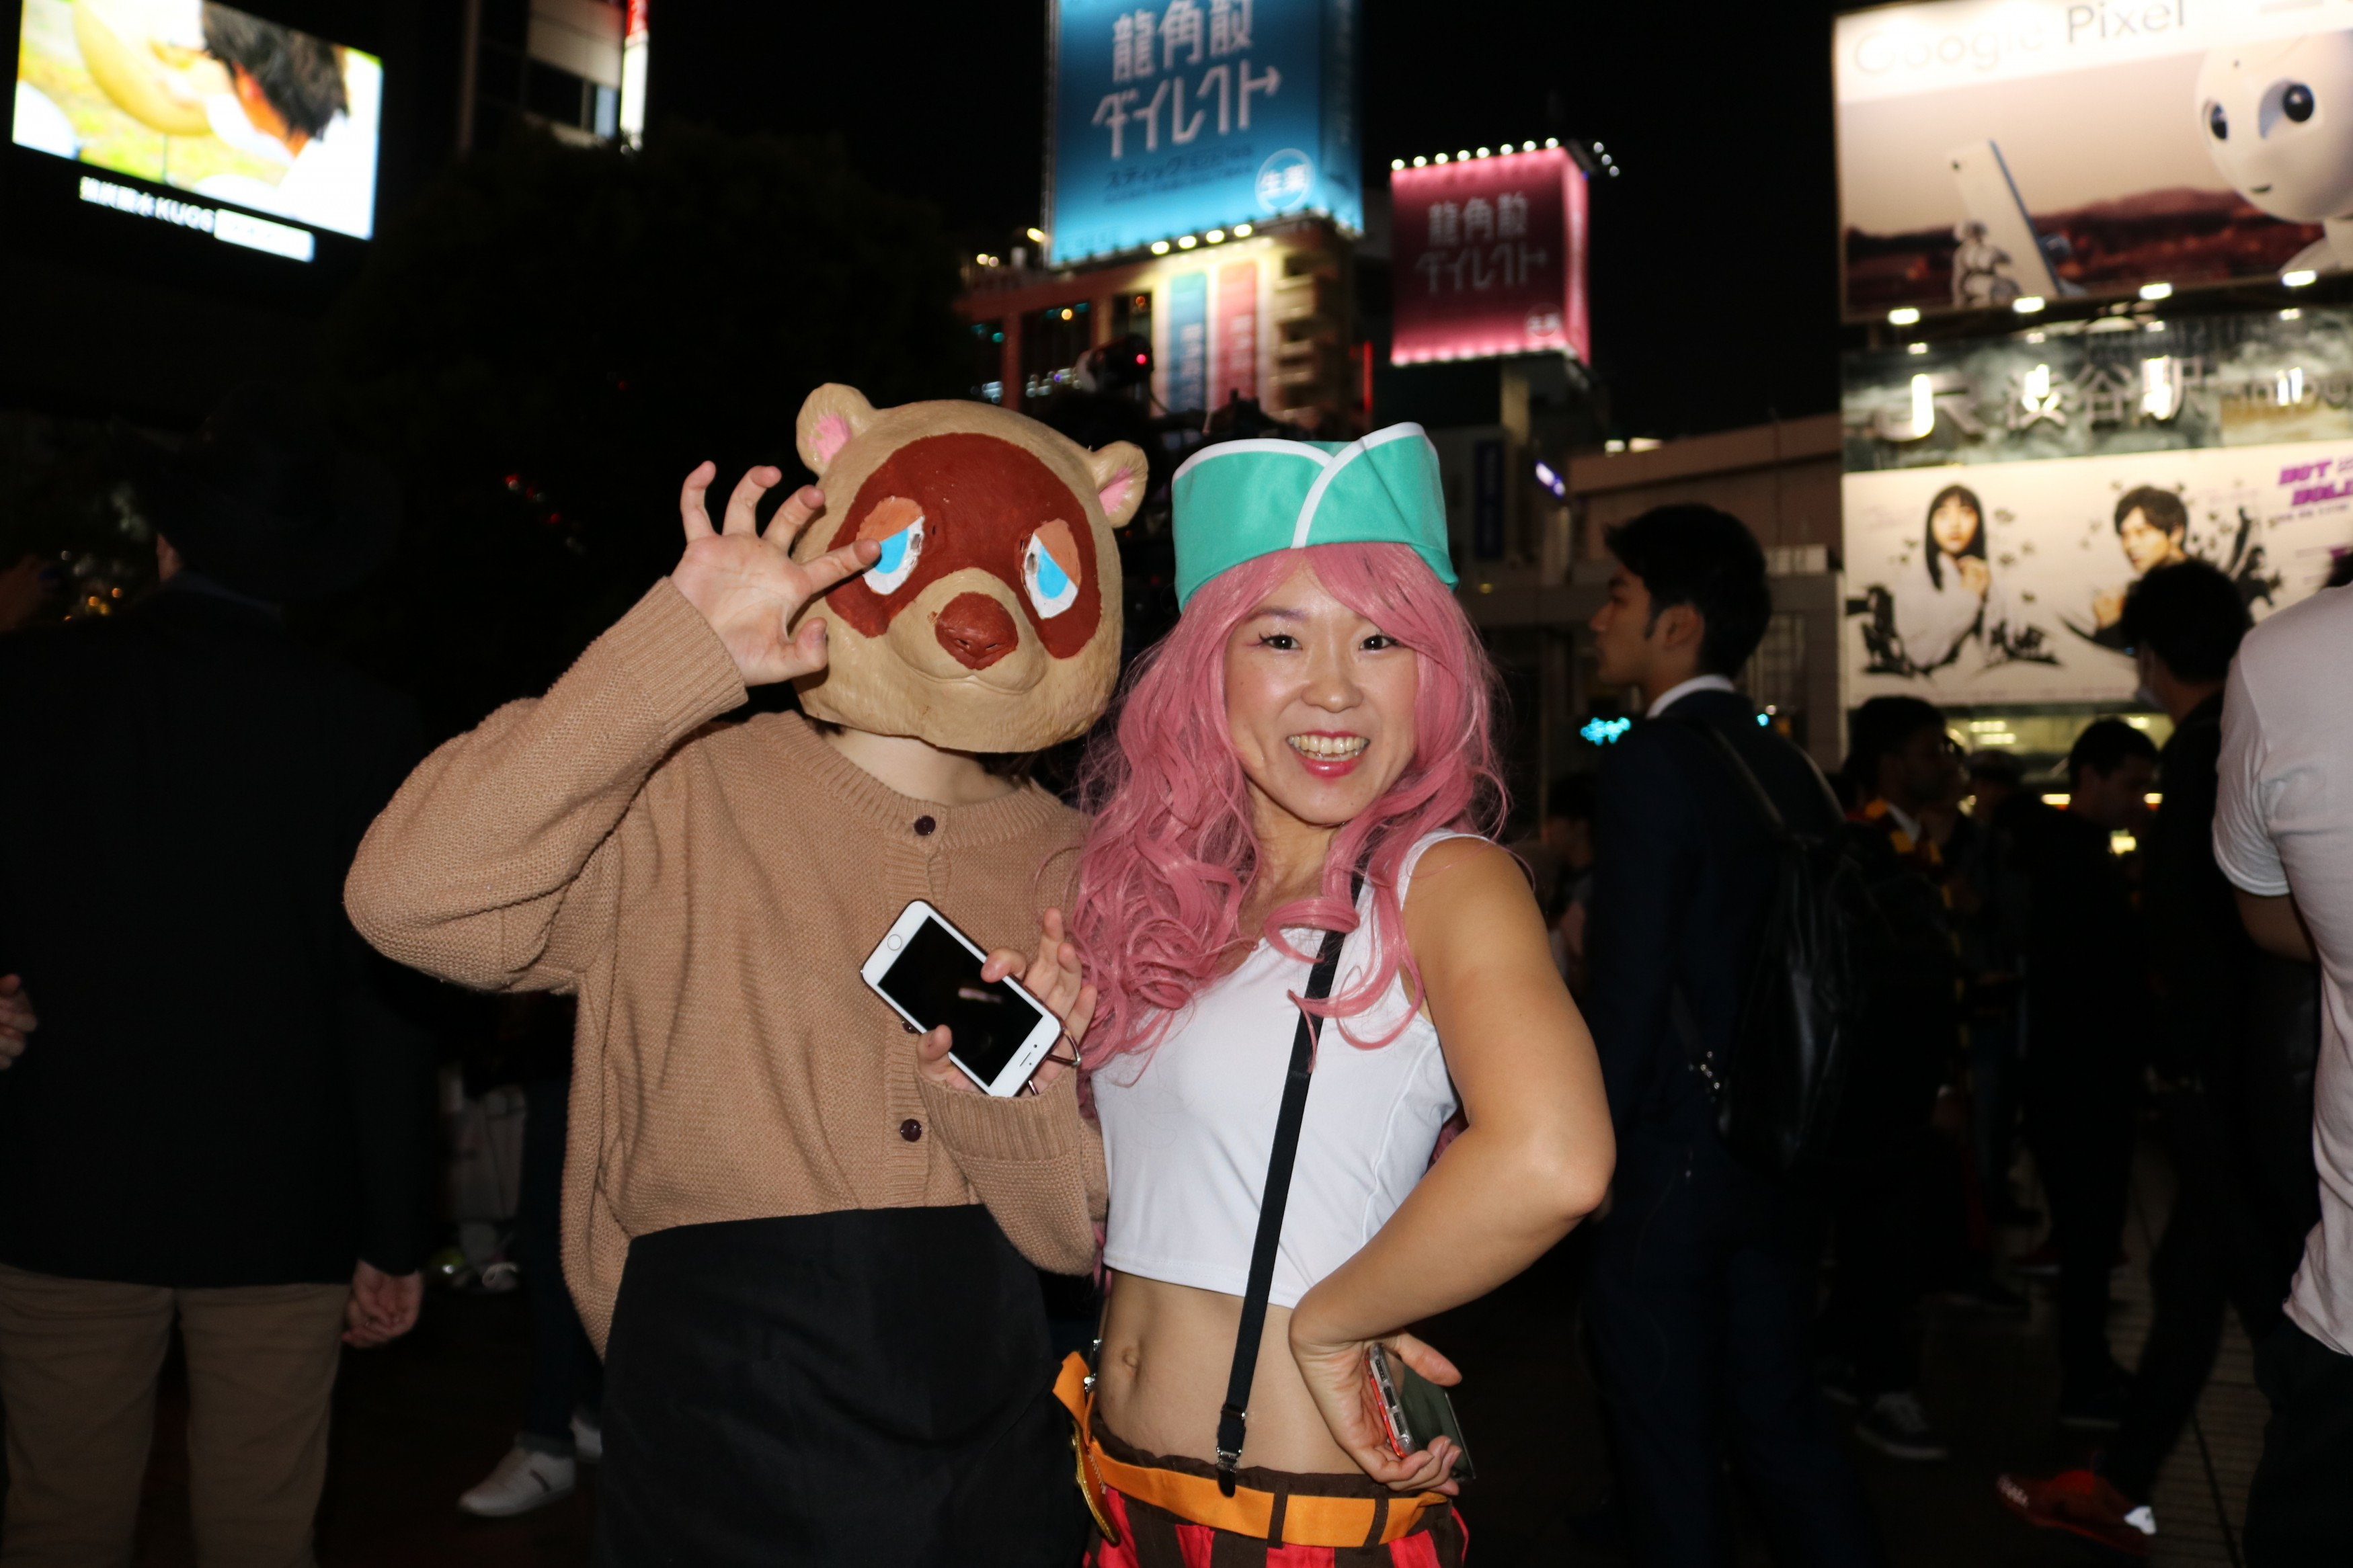 Hallowen Costume Shibuya Tom Nook and Jewelry Bonney